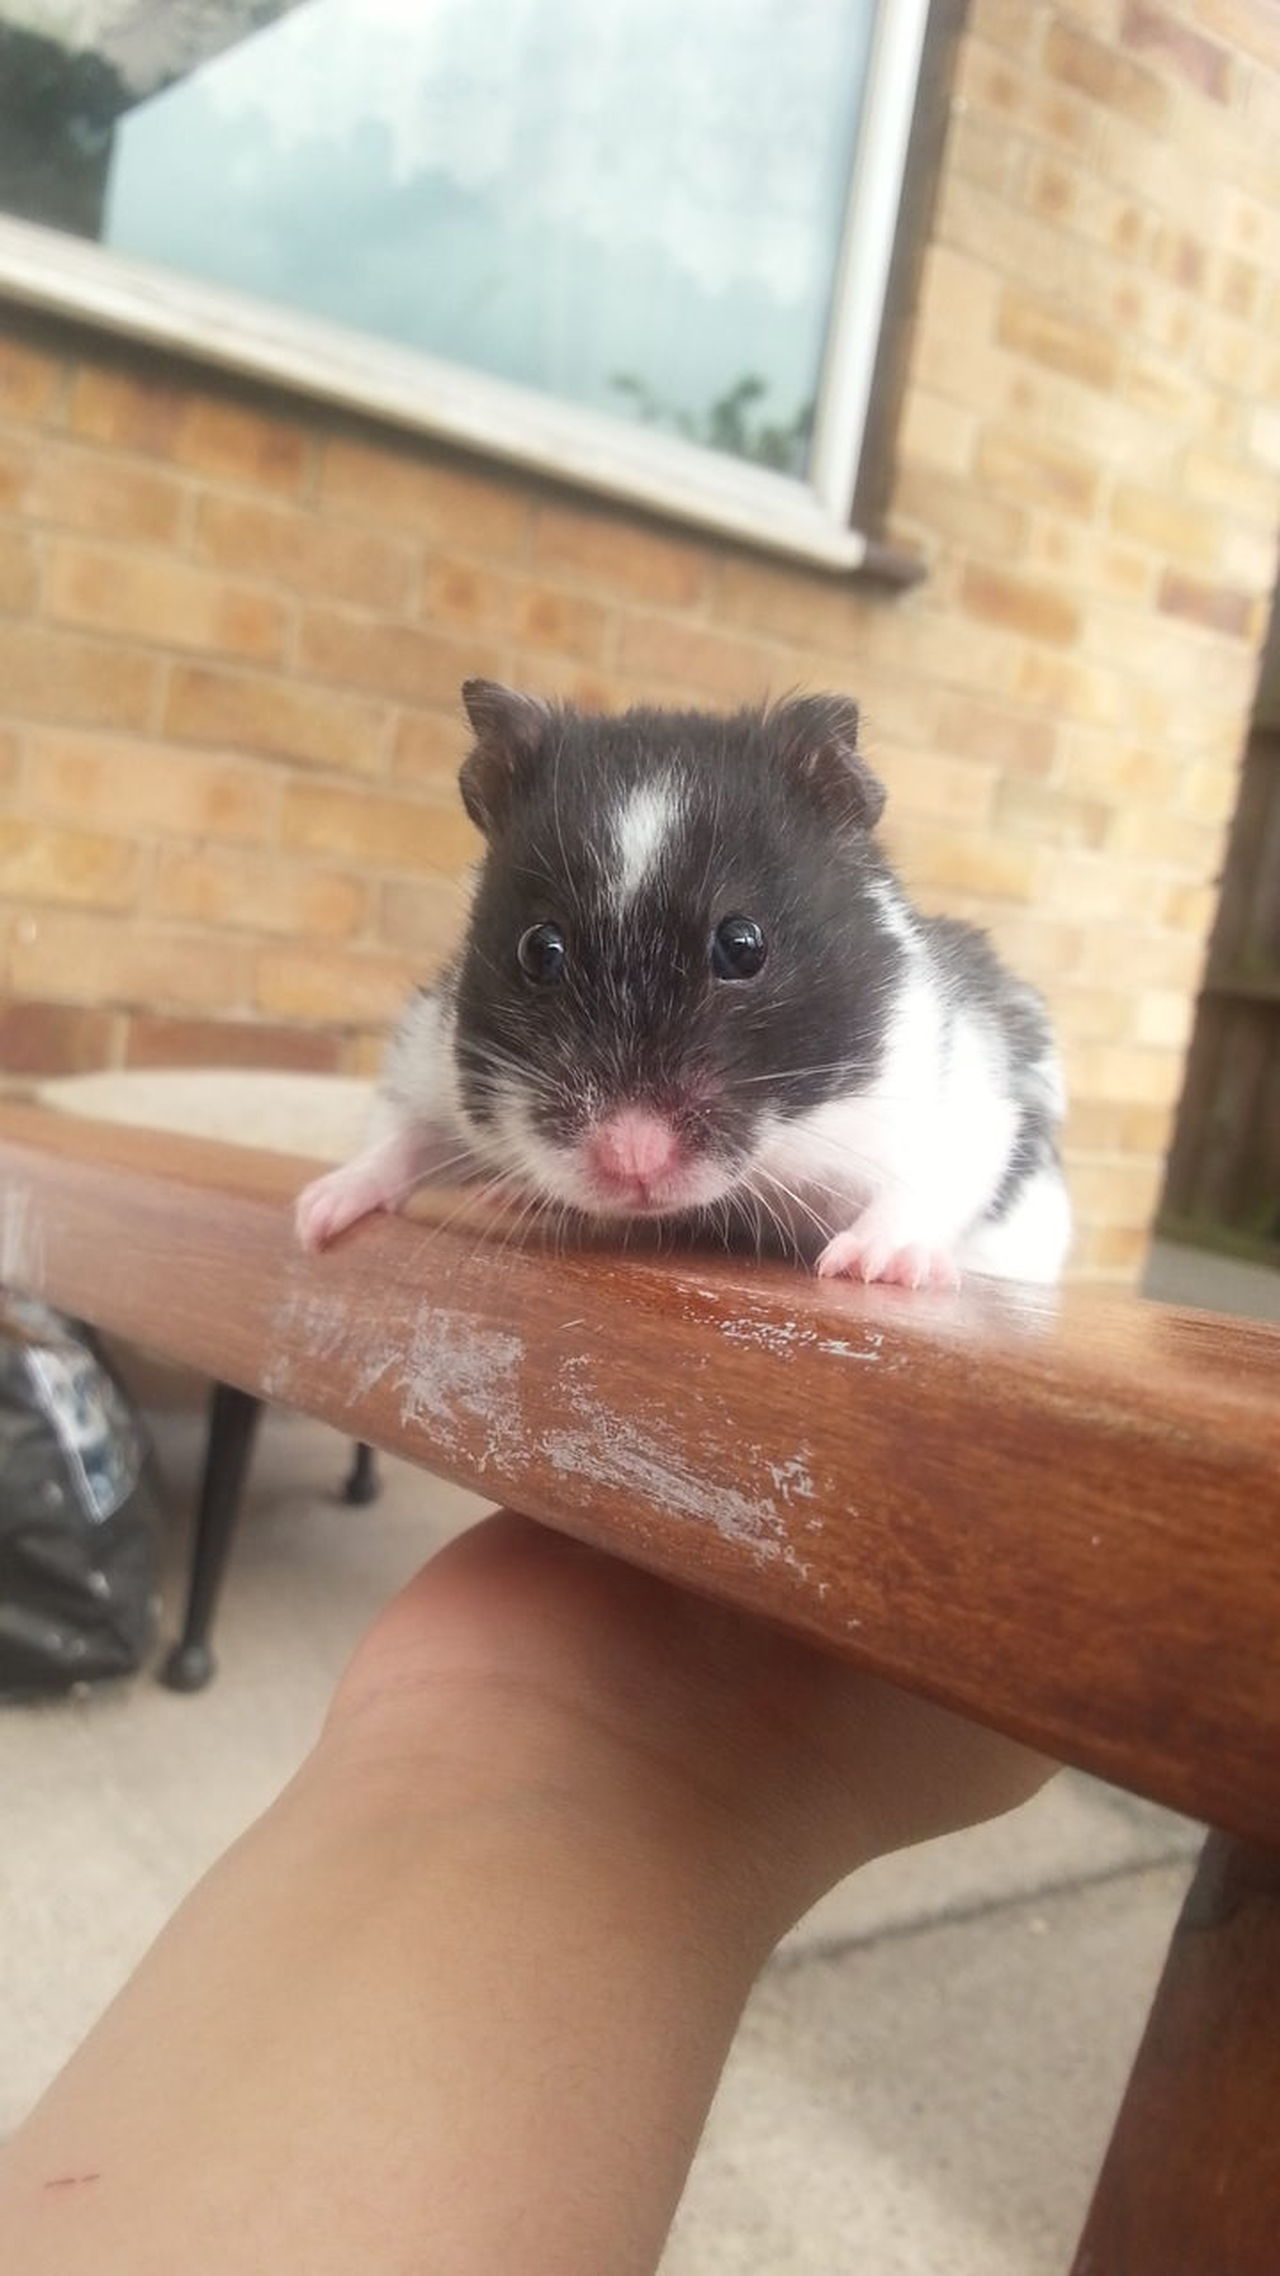 Animal Themes Human Body Part One Person Animal Pets Close-up Day Human Hand Relaxing Lovelyday💛 Cute Pets Sunnydays Focus On Details Beautiful Nottingham Happy :) Looking Down EyeEm HappyMood Outdoor Photography Eating Time Hamster Baby Hamster Love No People Animal Wildlife